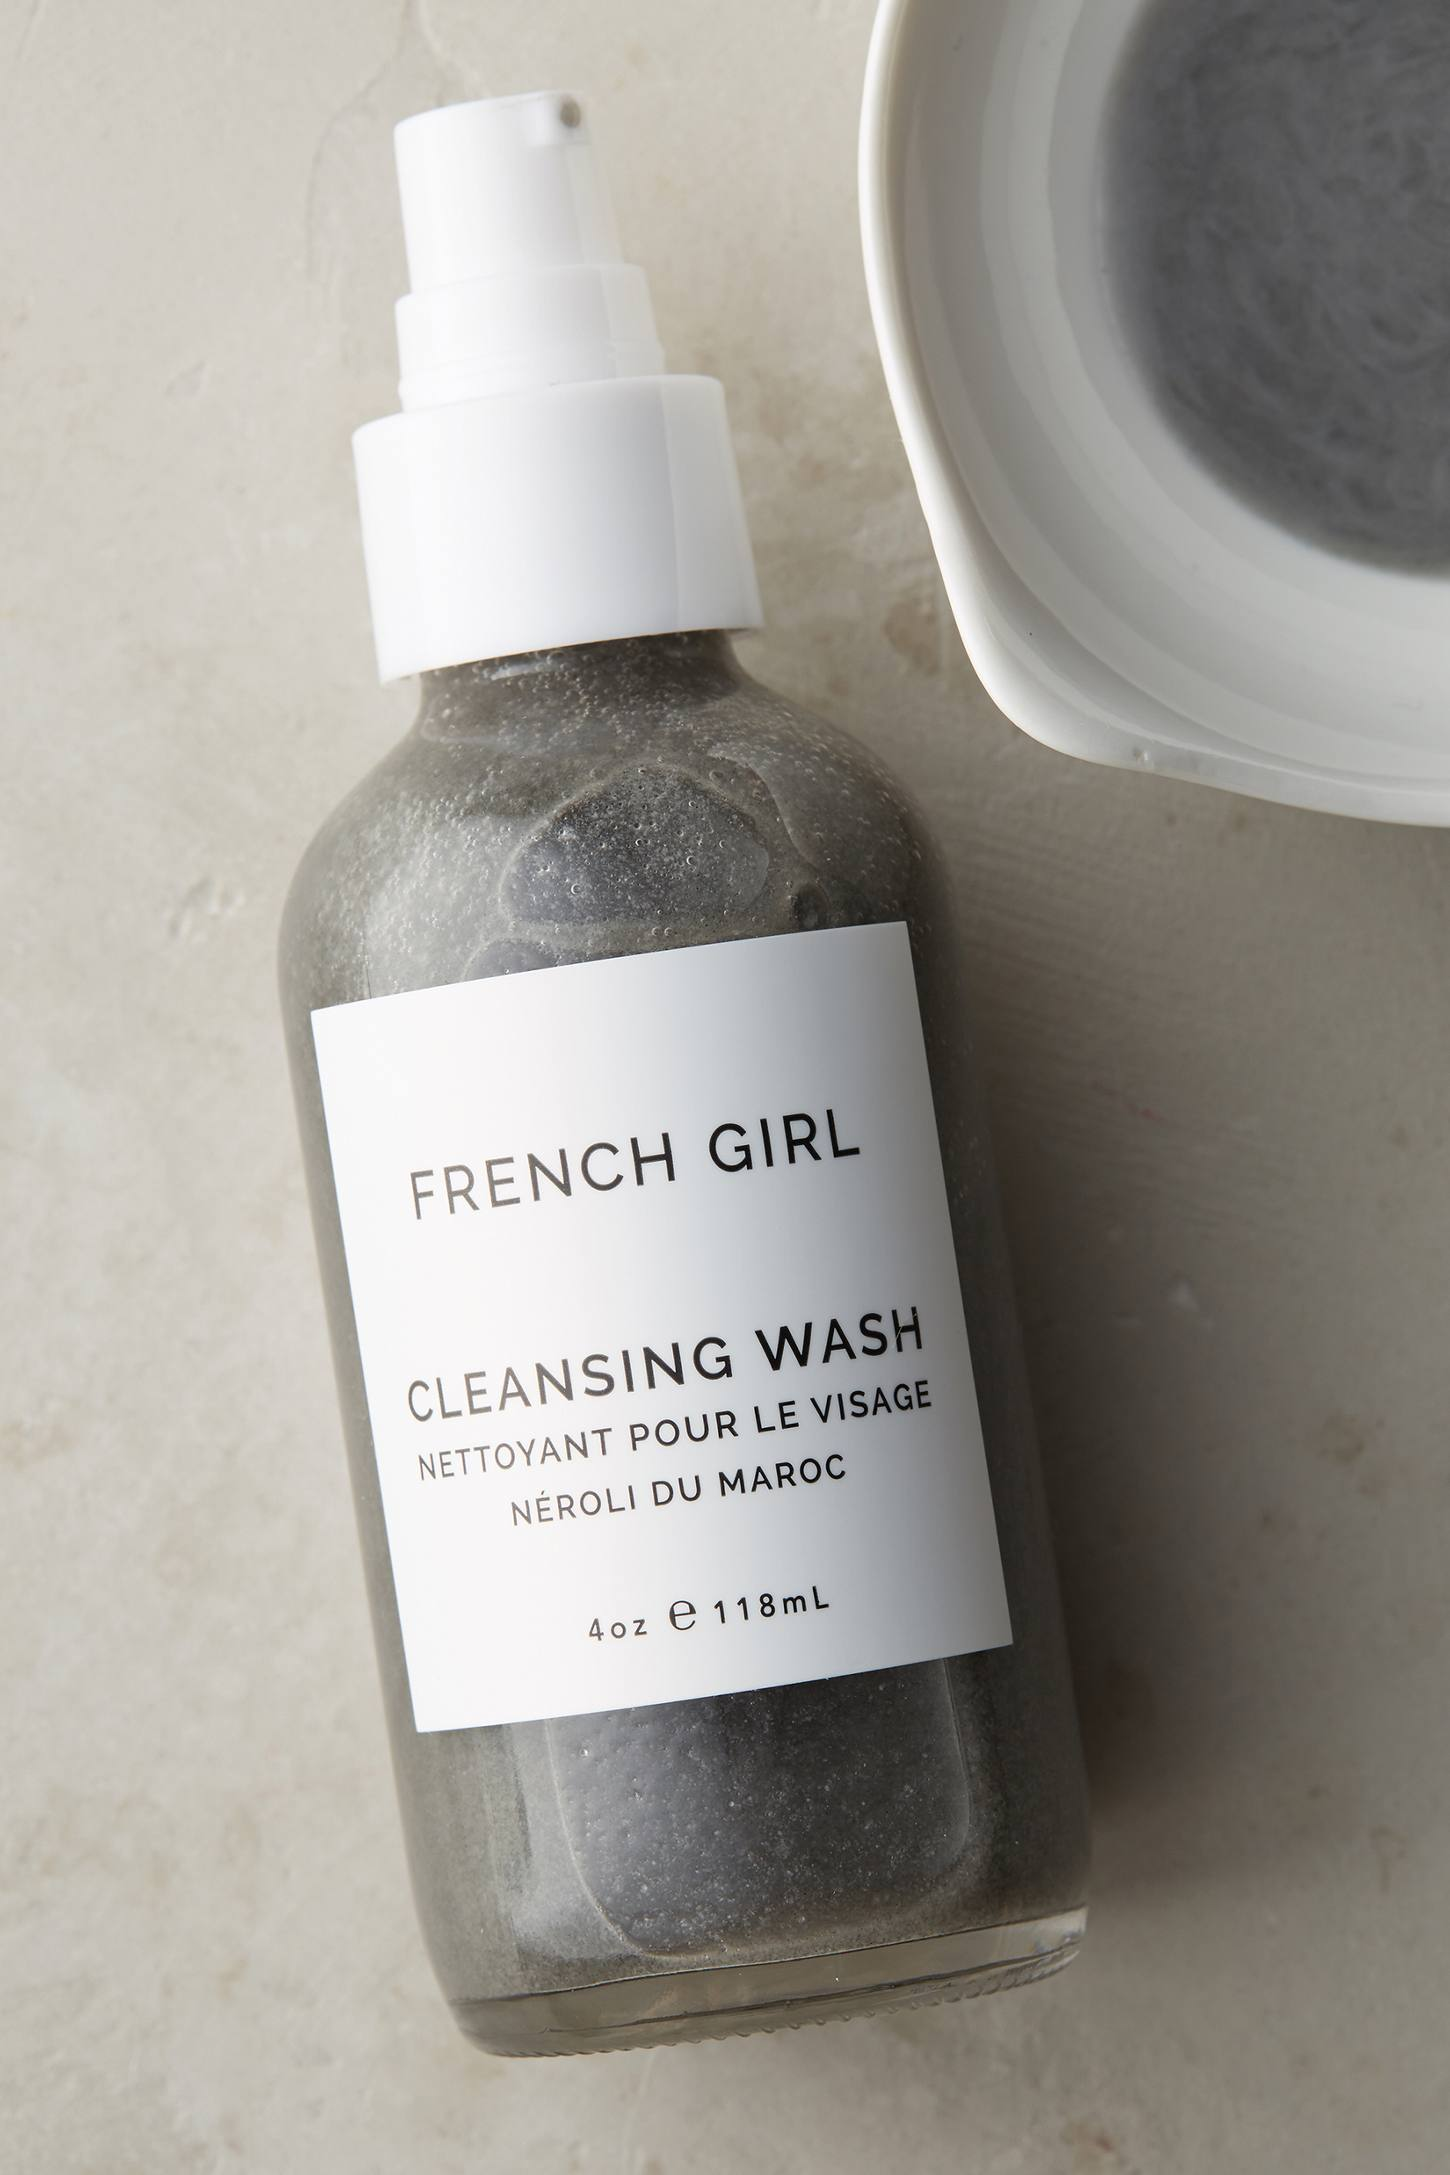 Slide View: 1: French Girl Organics Cleansing Wash